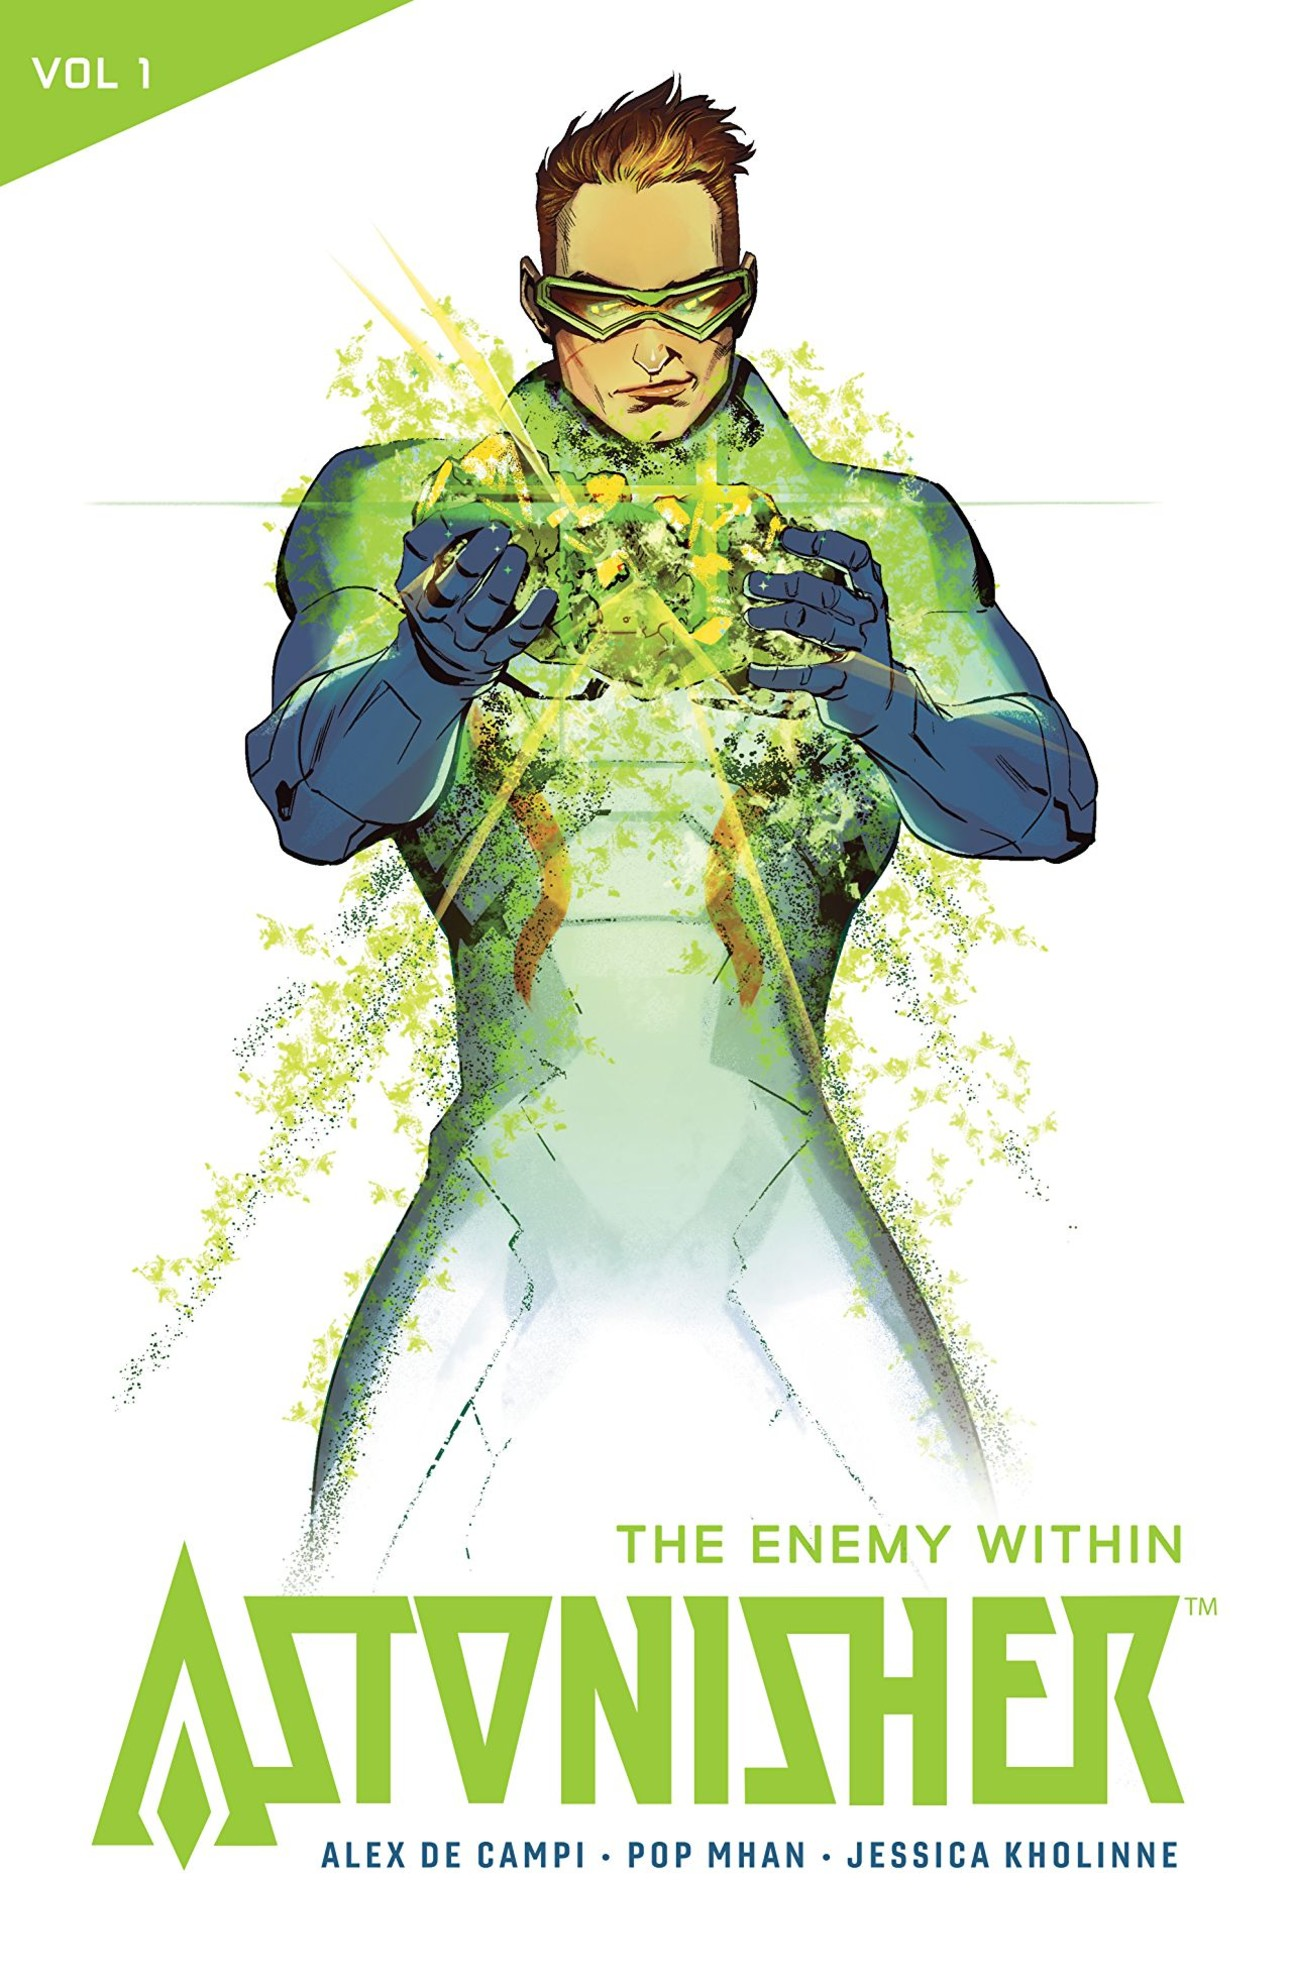 astonisher the enemy within